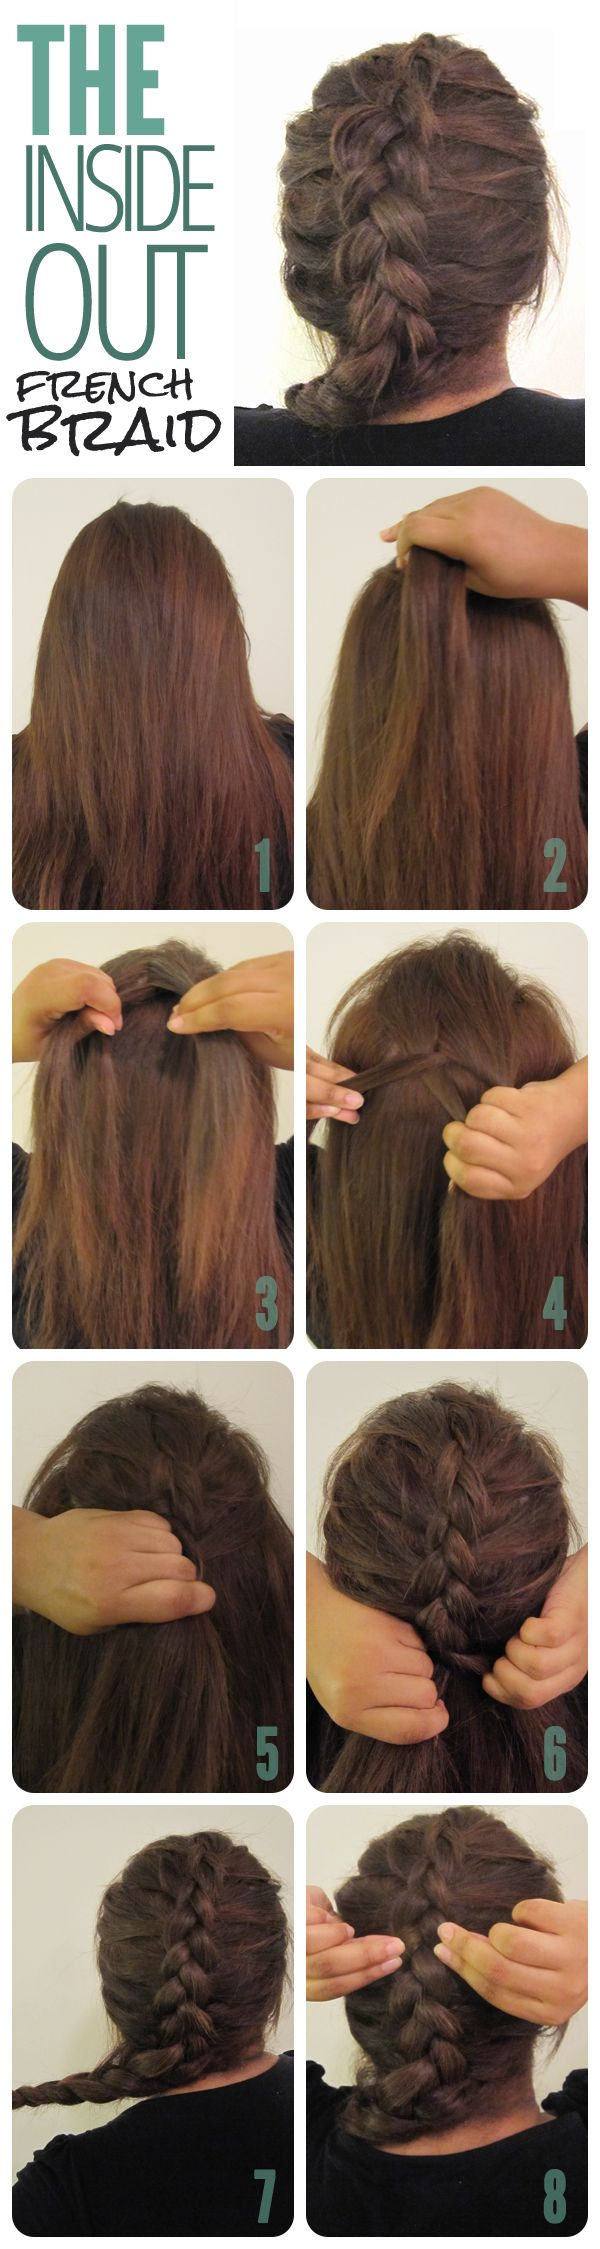 Super 1000 Ideas About Inside Out French Braid On Pinterest French Hairstyle Inspiration Daily Dogsangcom